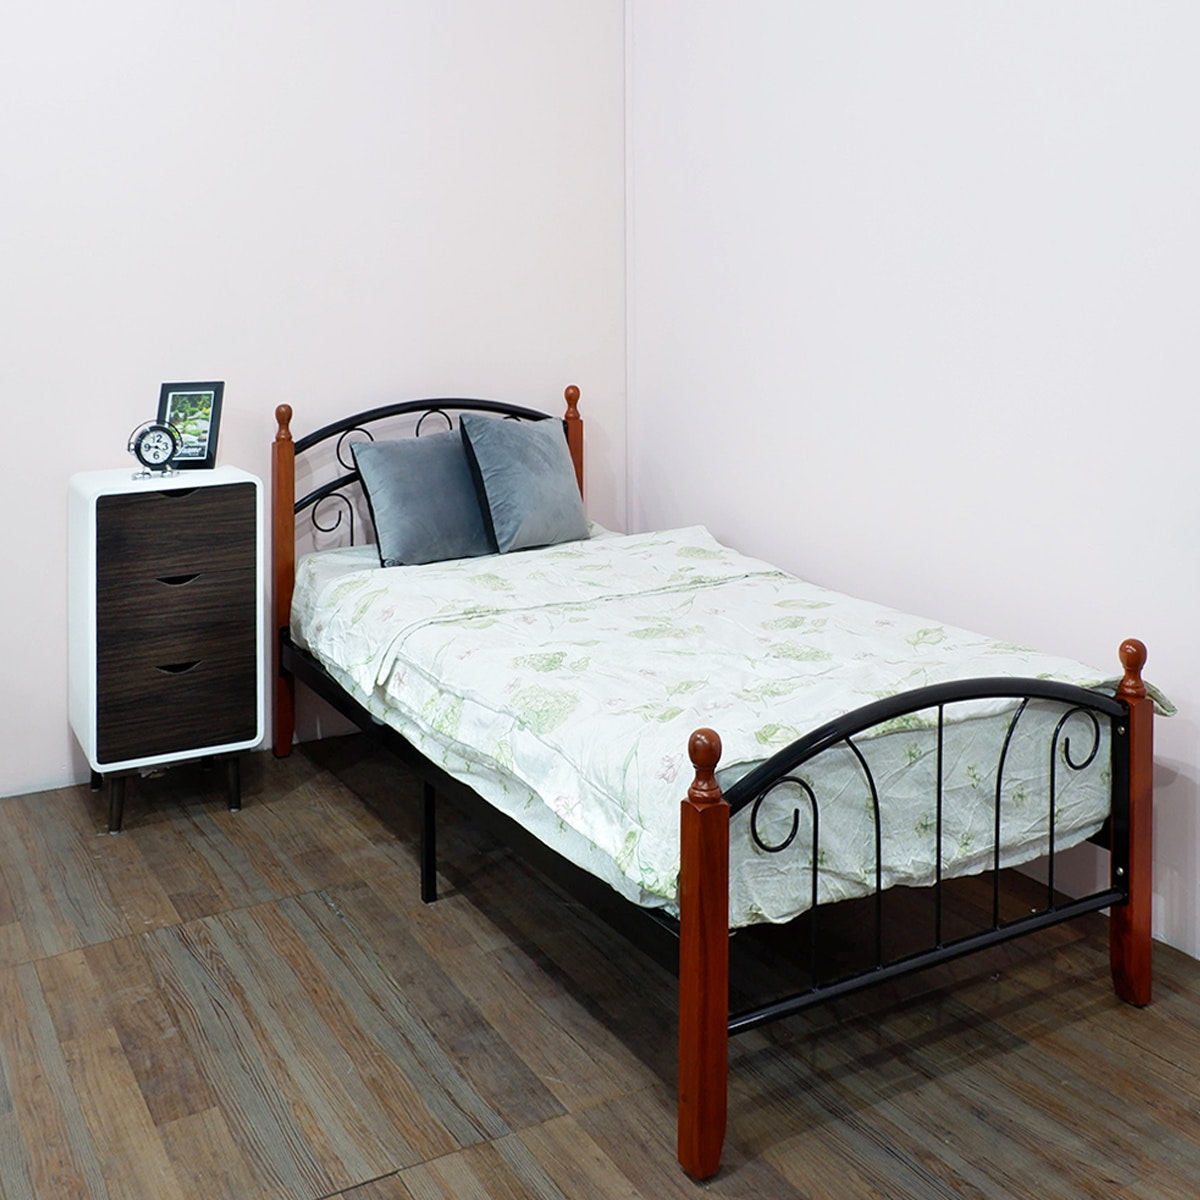 Olive House Ranjang Tempat Tidur Hamilton Single Bed - Black